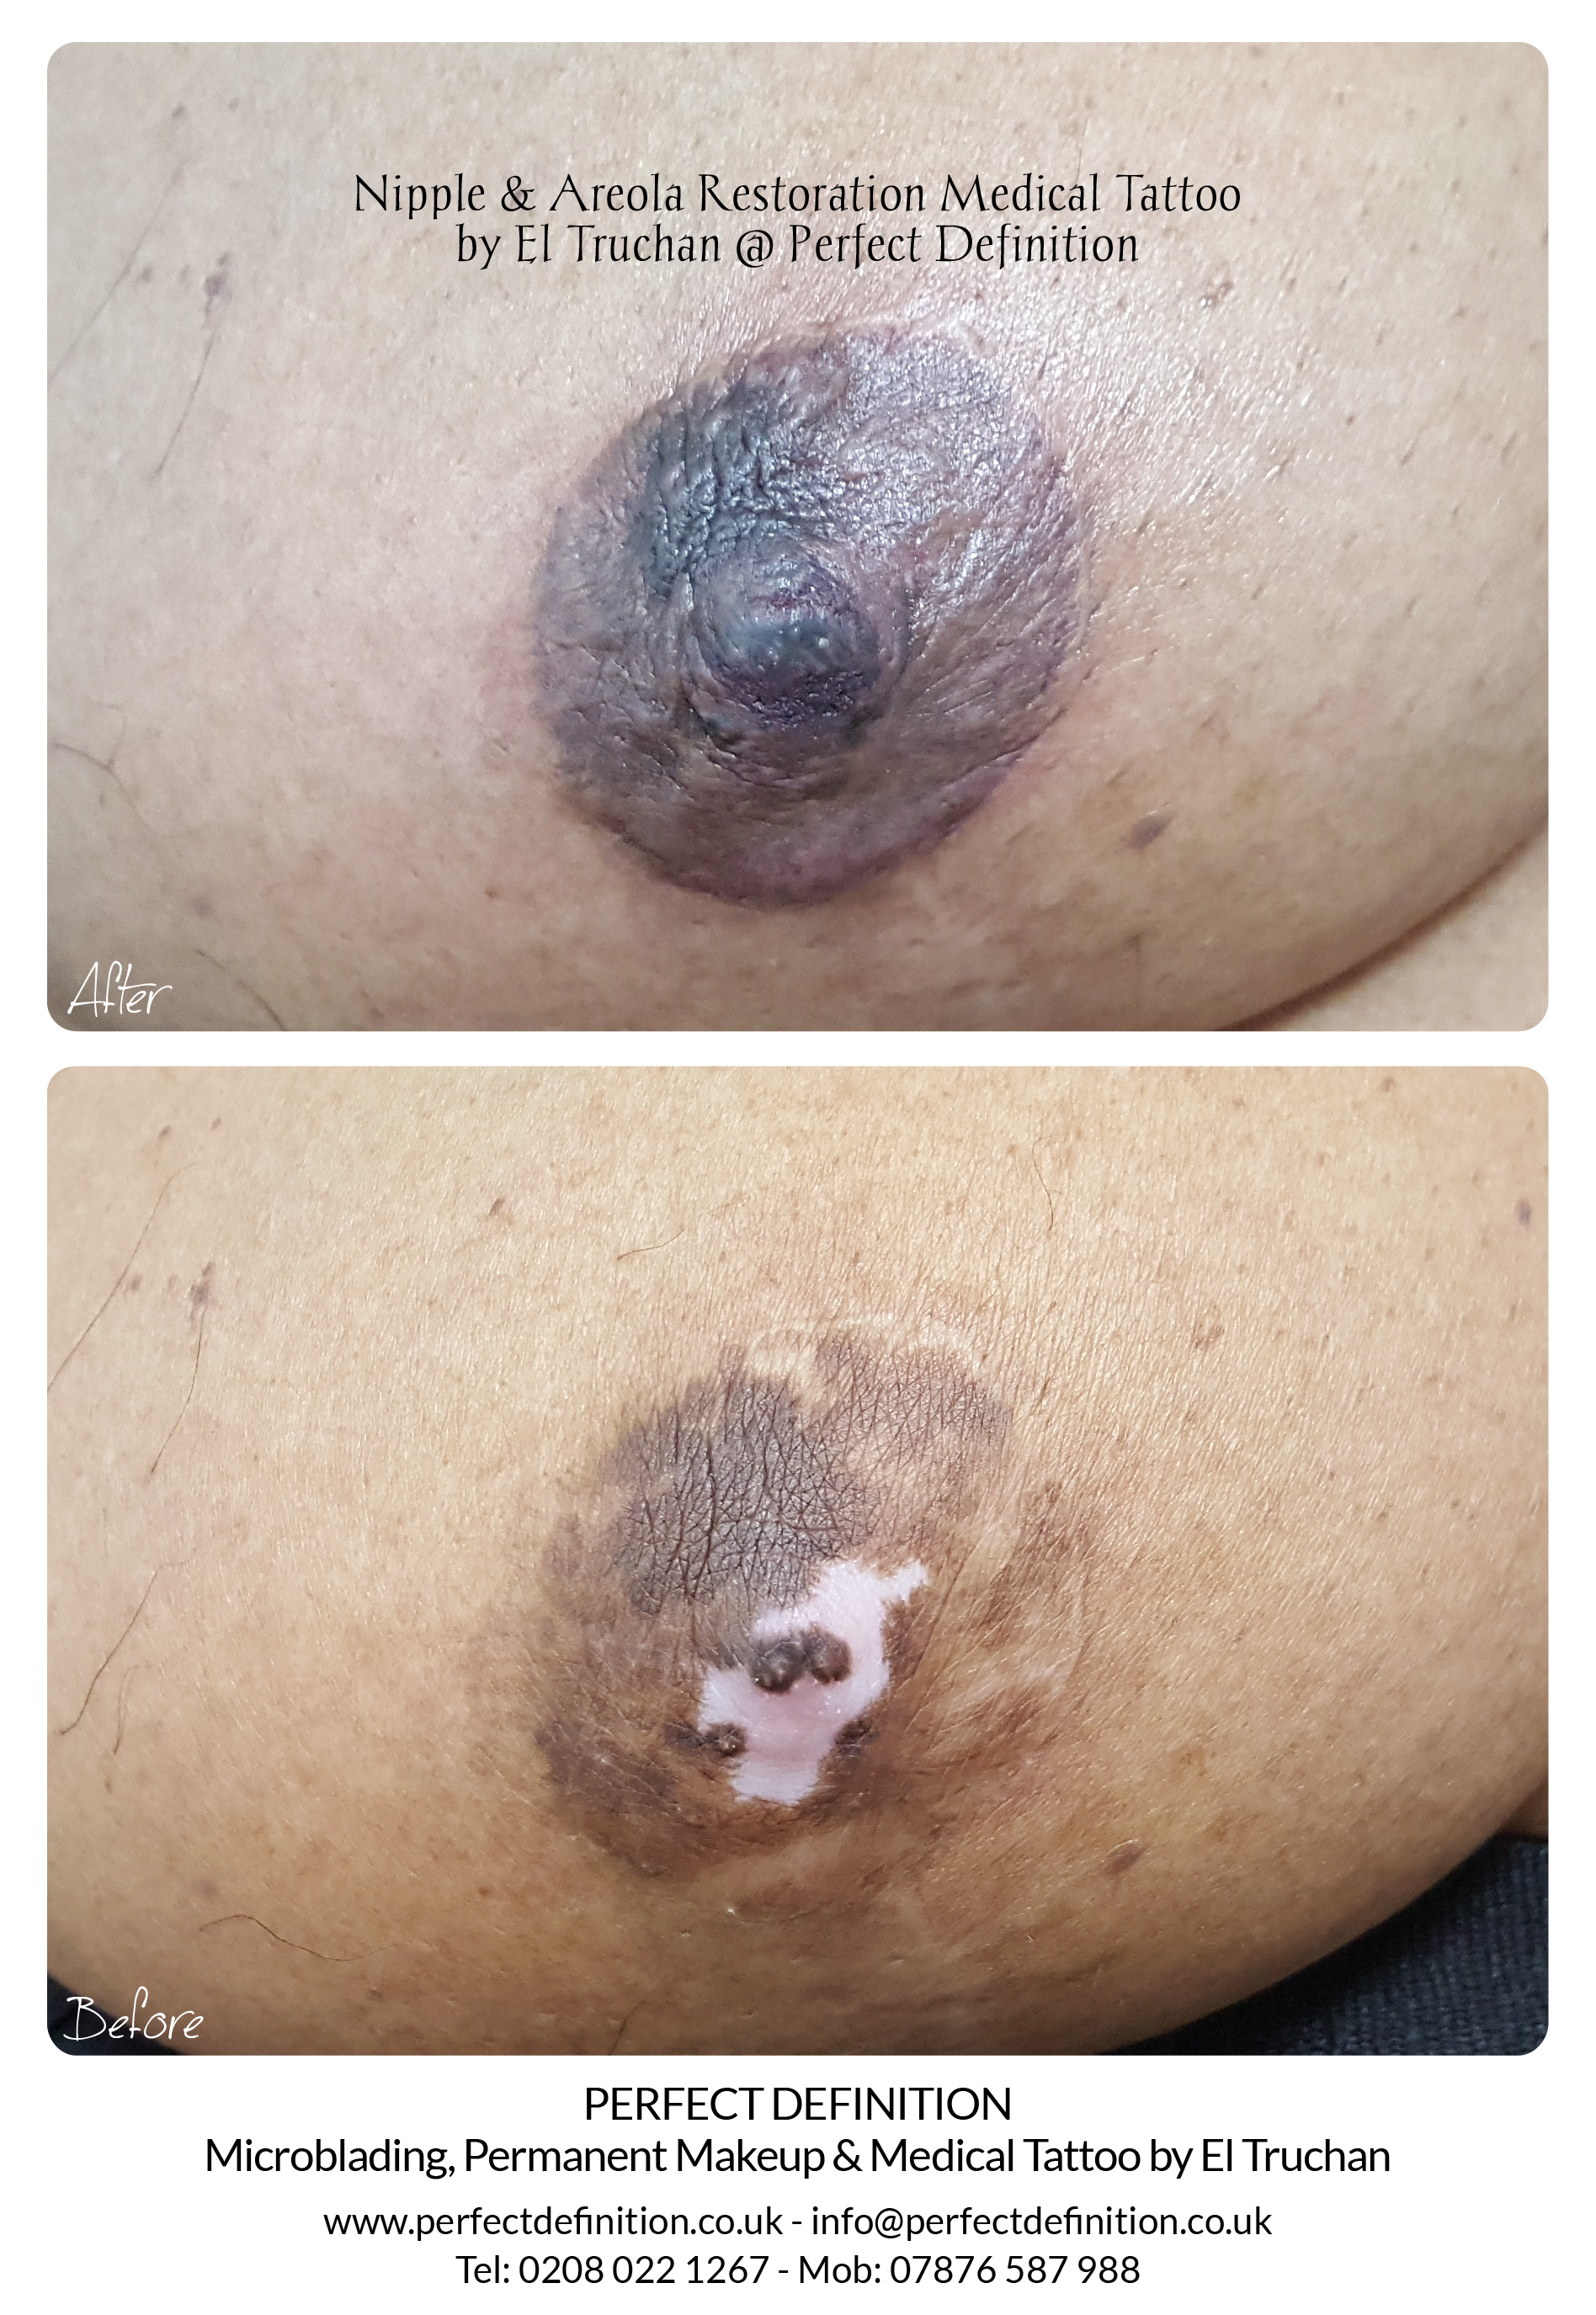 Nipple & Areola Restoration Medical Tatt